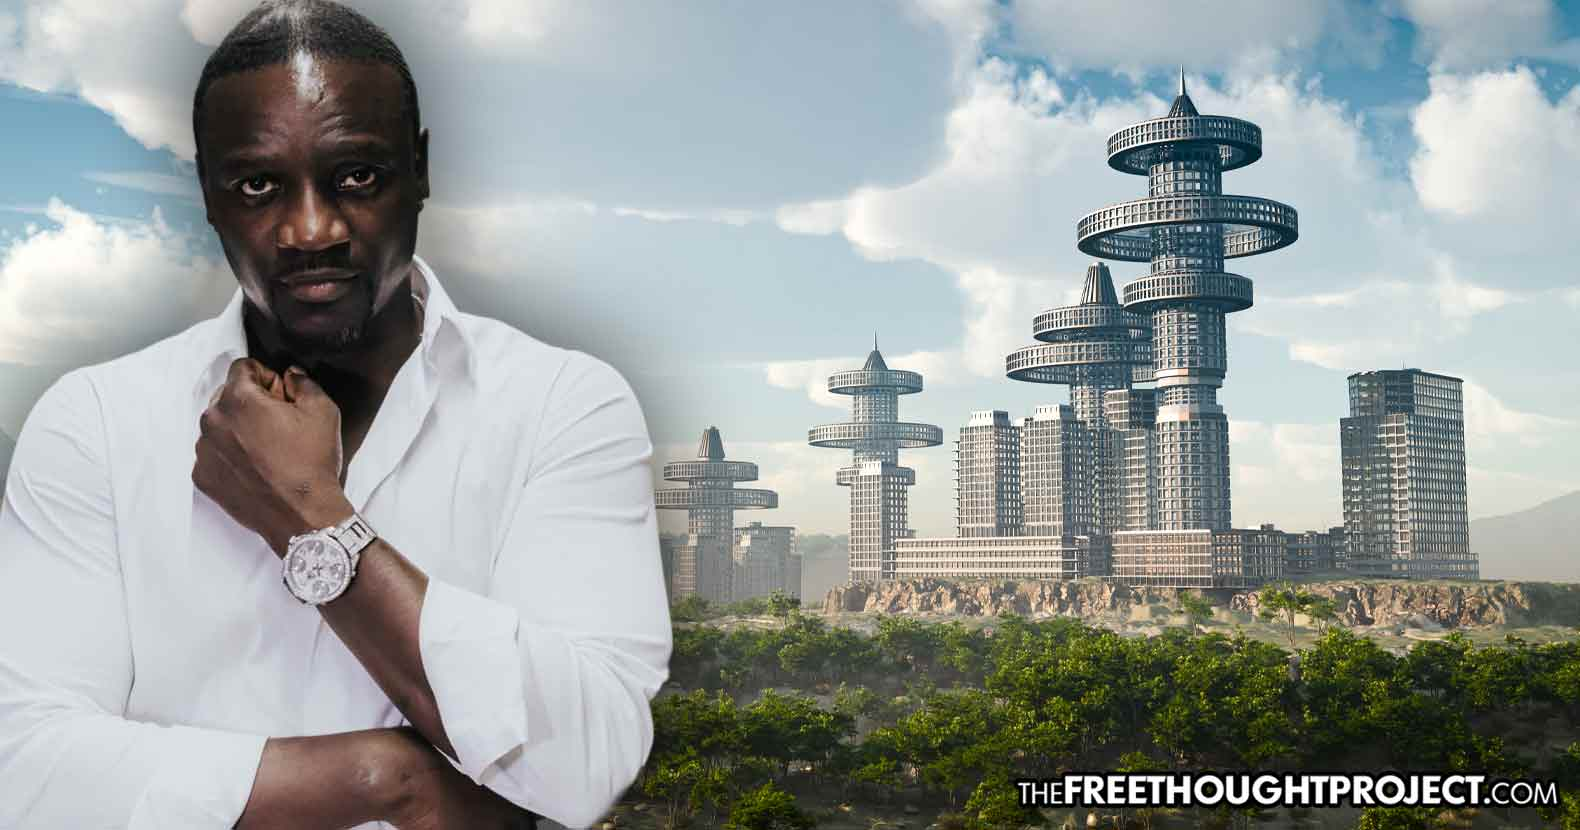 Rap Superstar Akon Creates World's First 'Crypto City' in Africa to Fight Controlled Economy